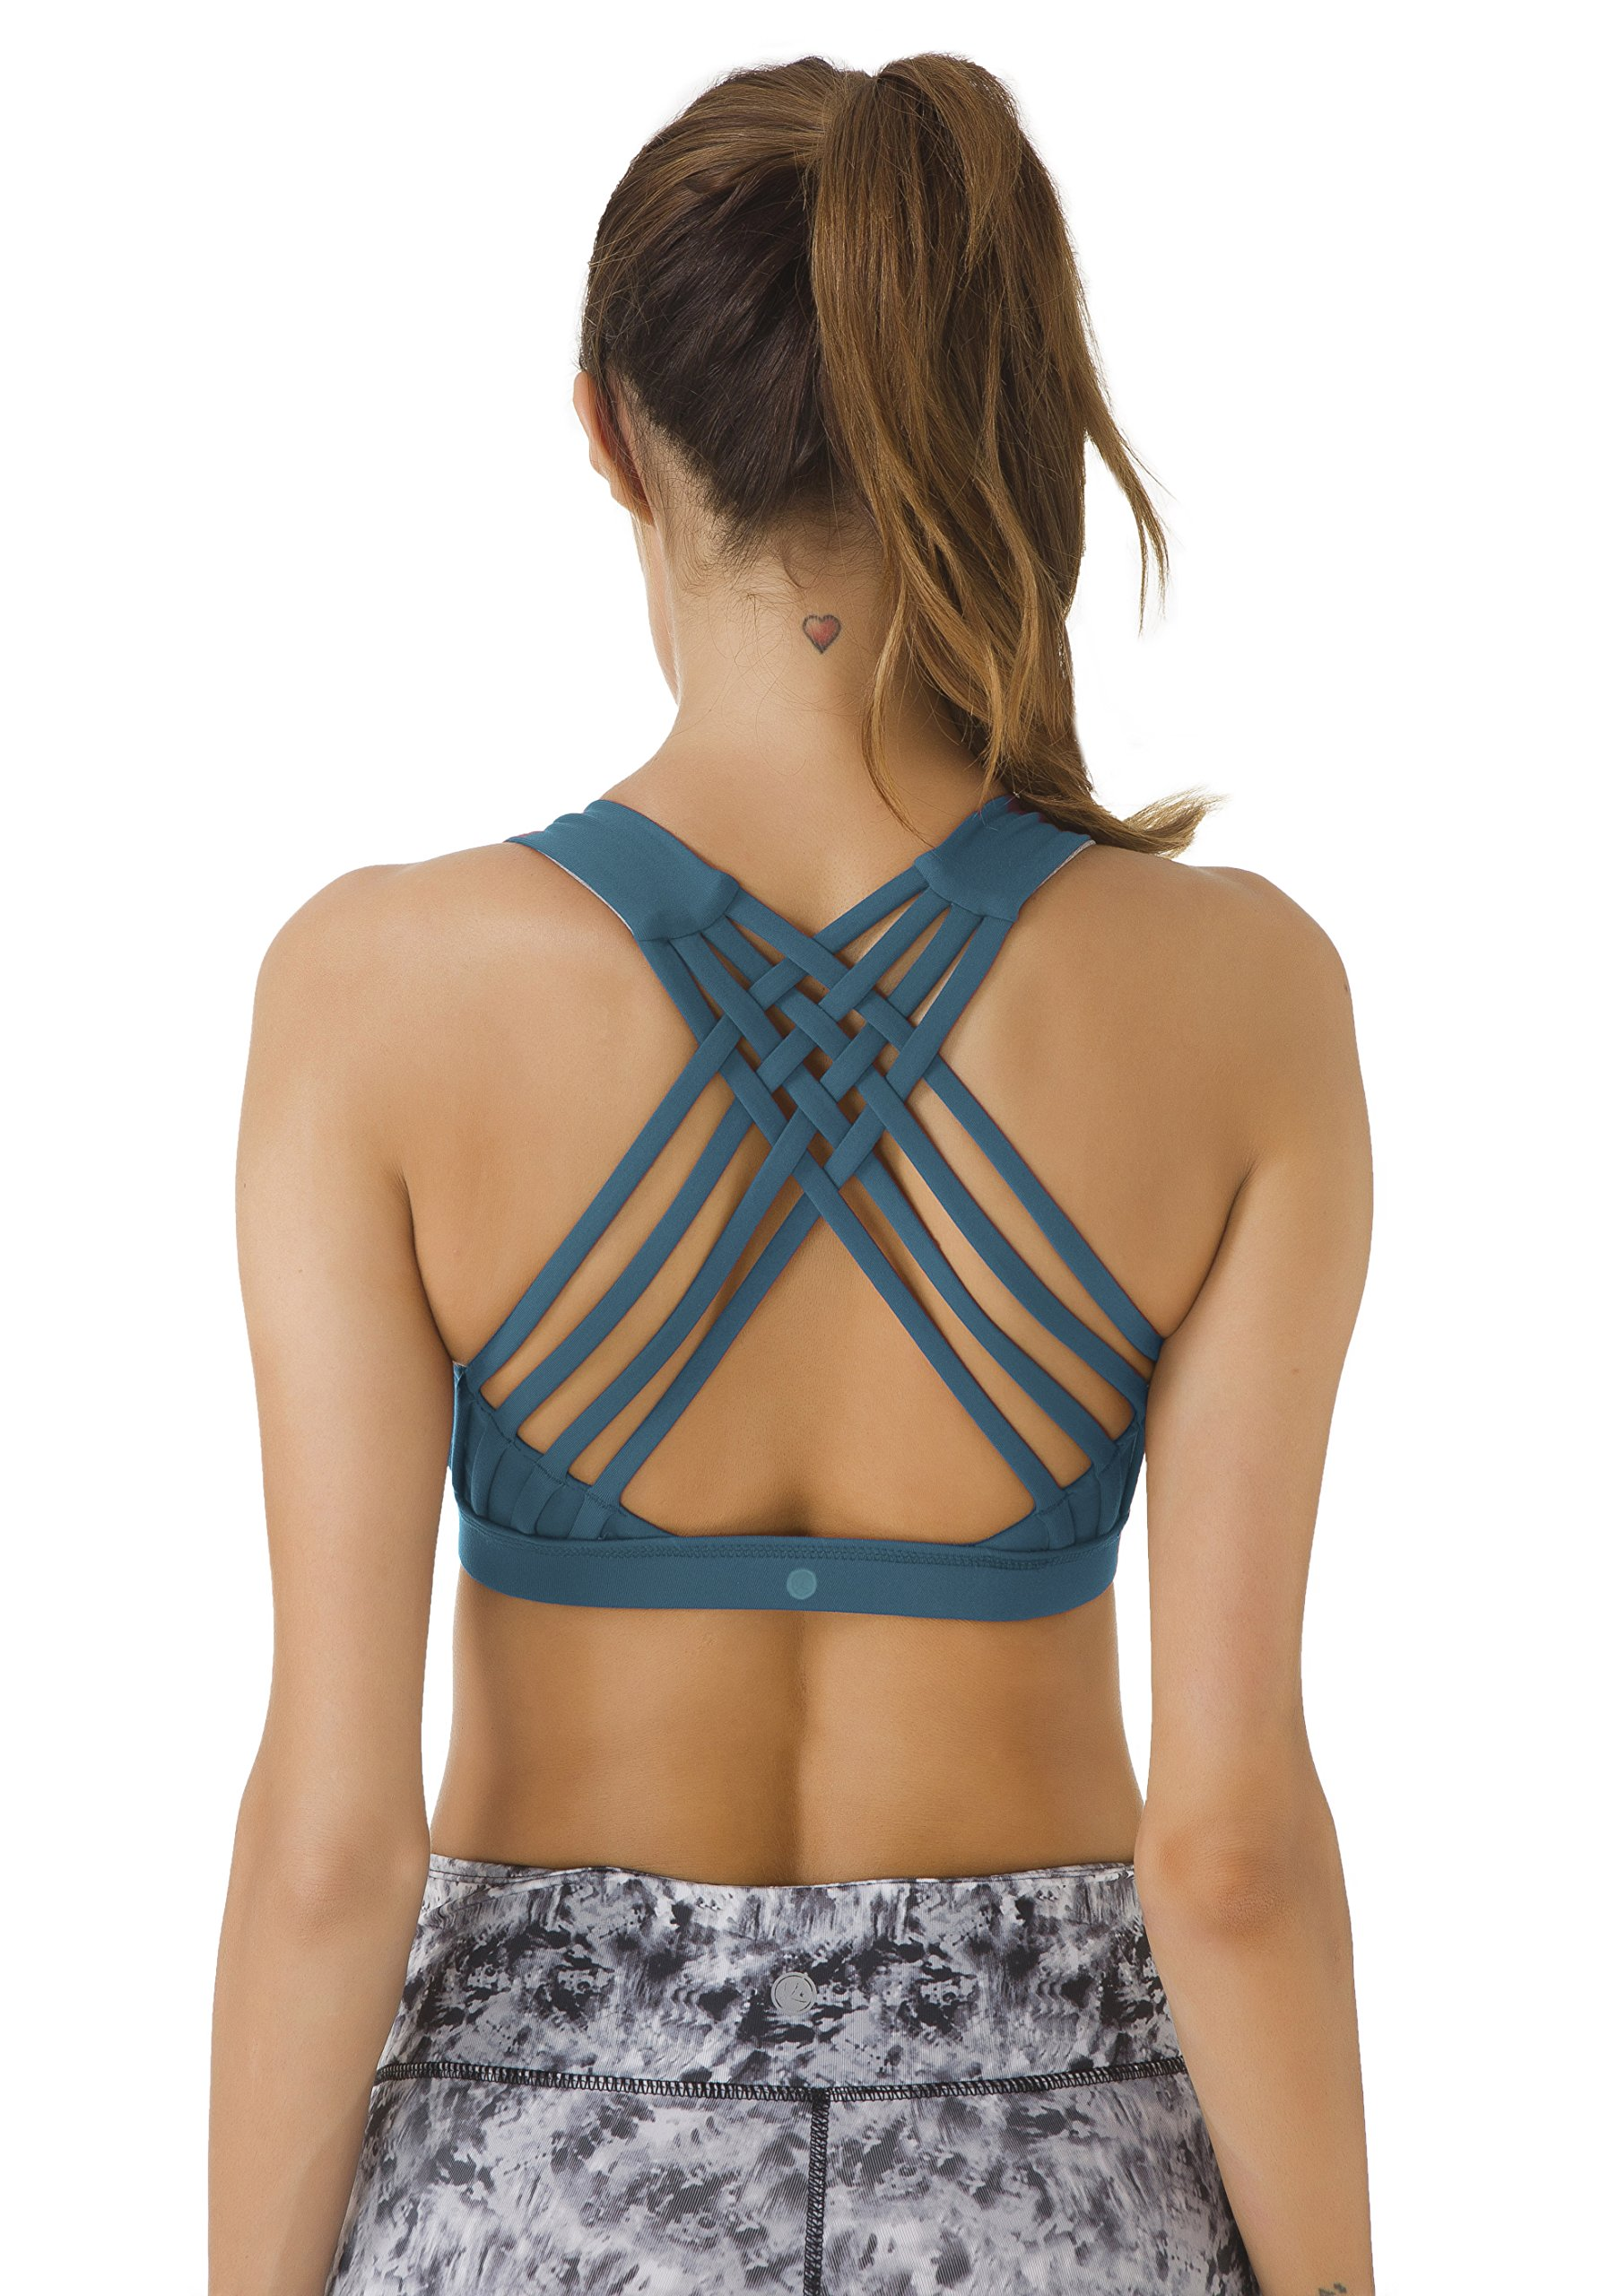 578433a9b3 Galleon - Queenie Ke Women s Medium Support Strappy Back Energy Sport Bra  Cotton Feel Size XL Color Teal